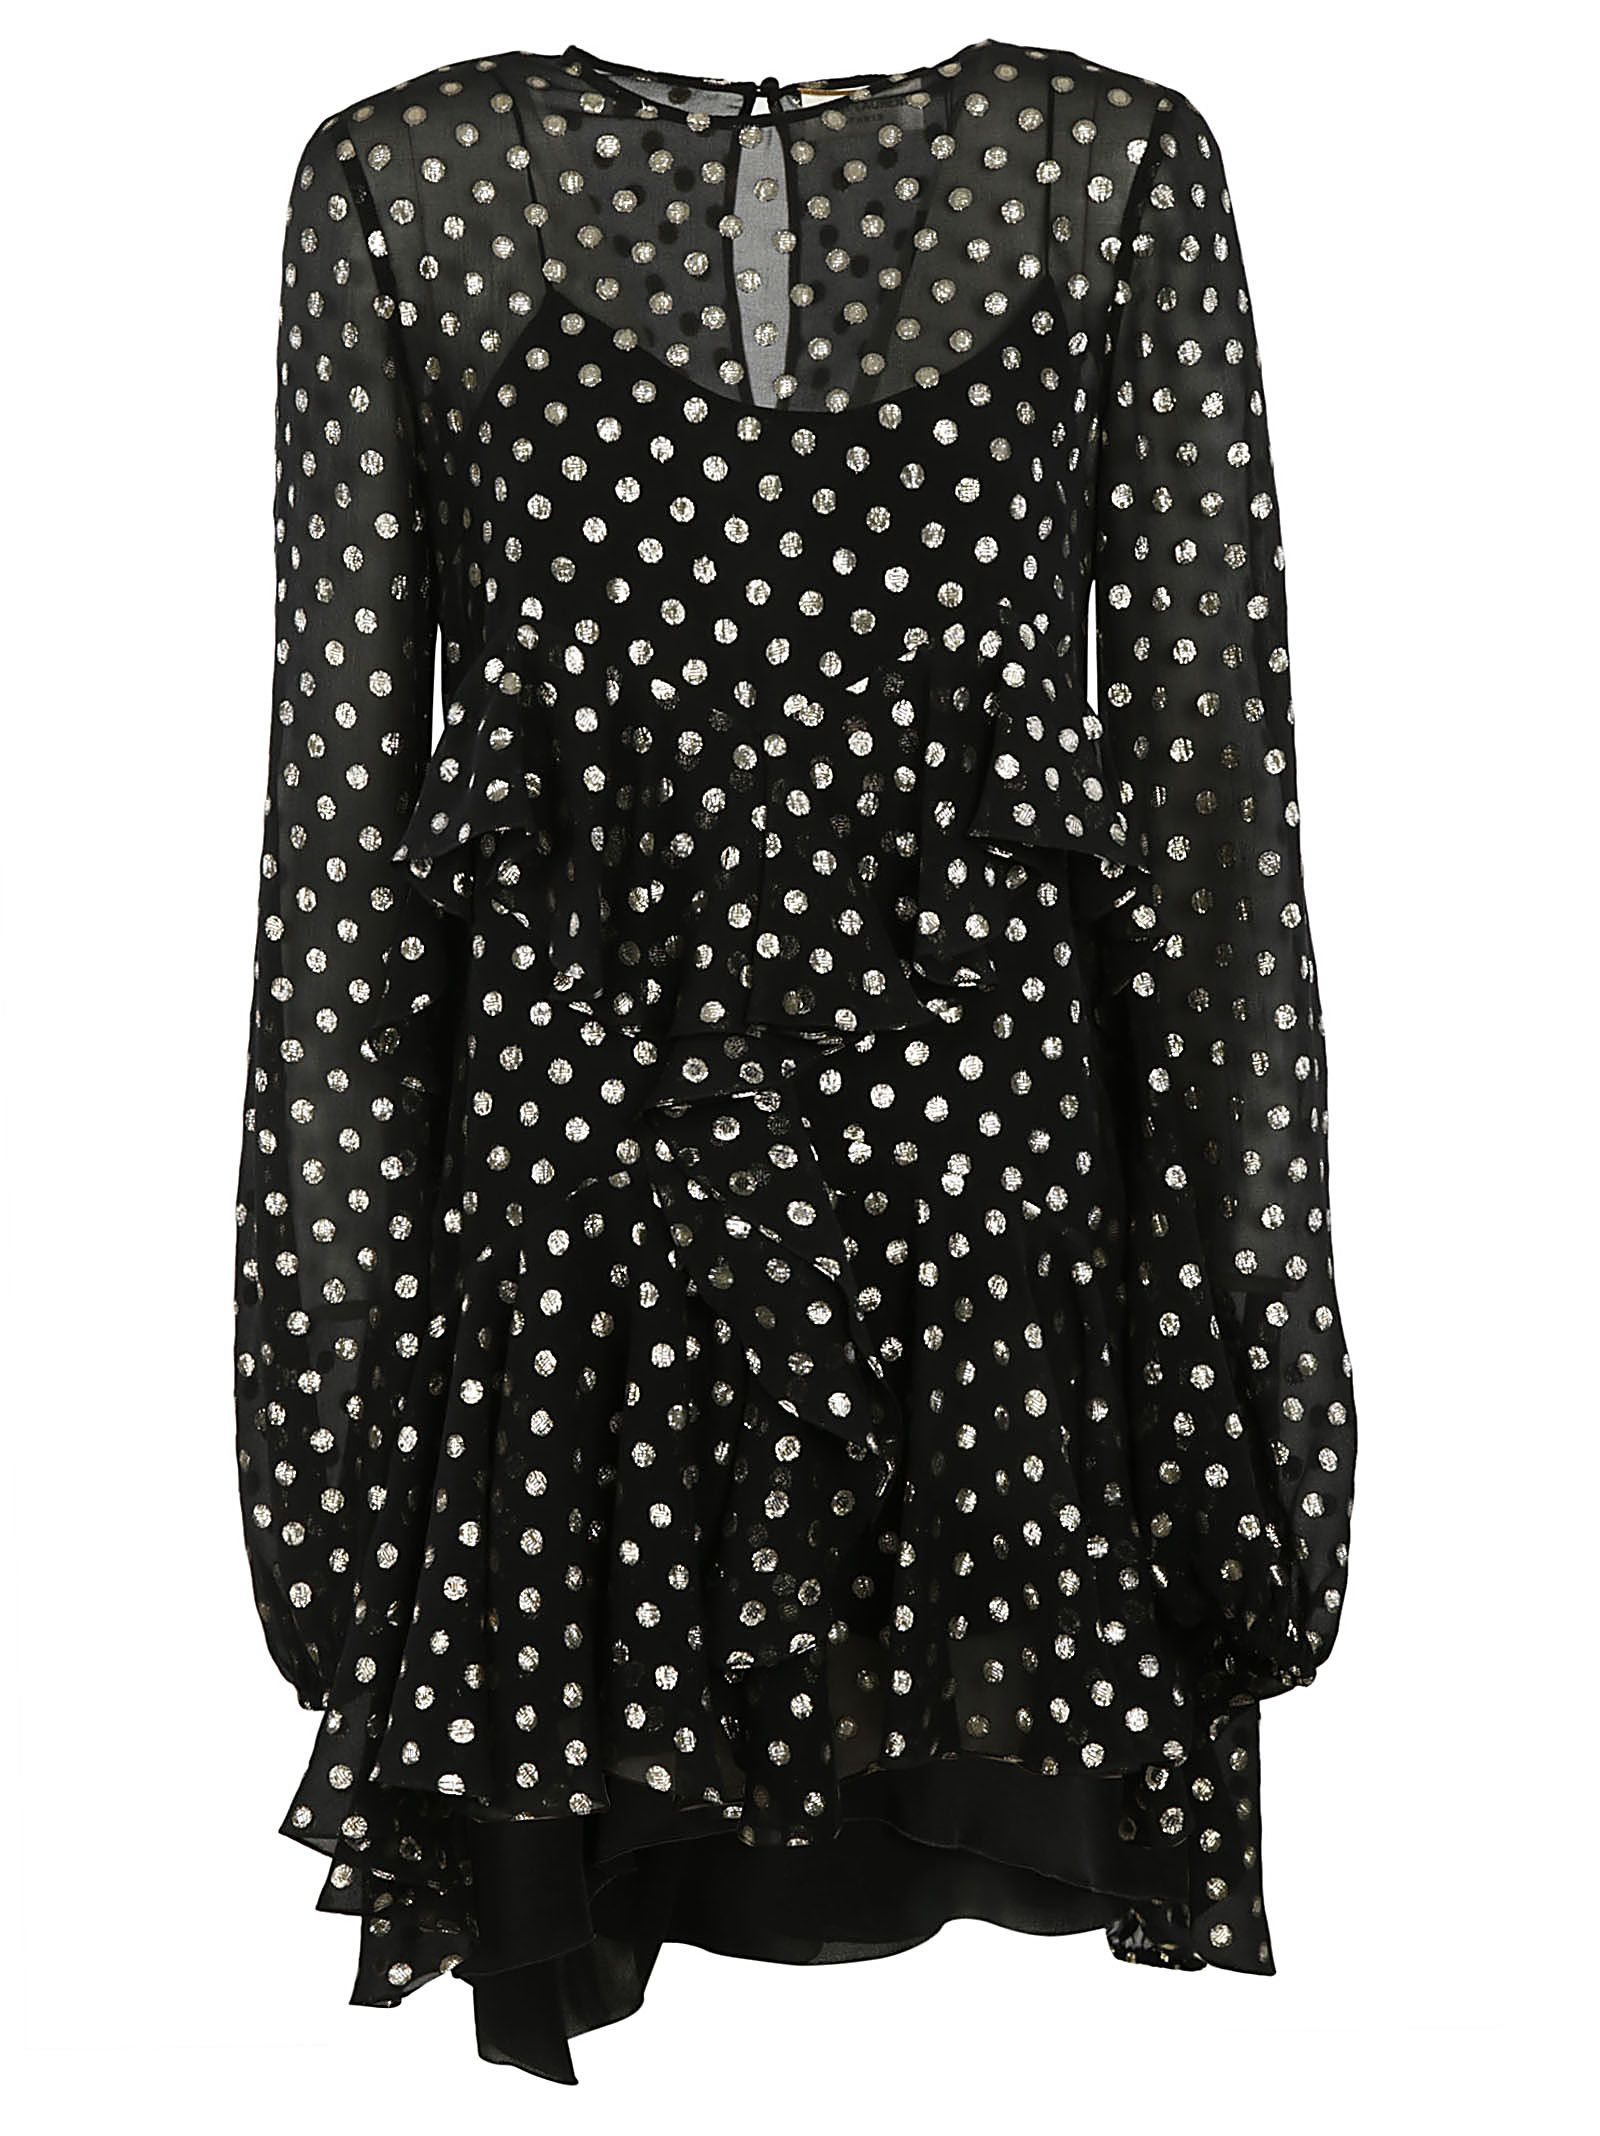 metallic polka dot dress - Black Saint Laurent xee9Sohg